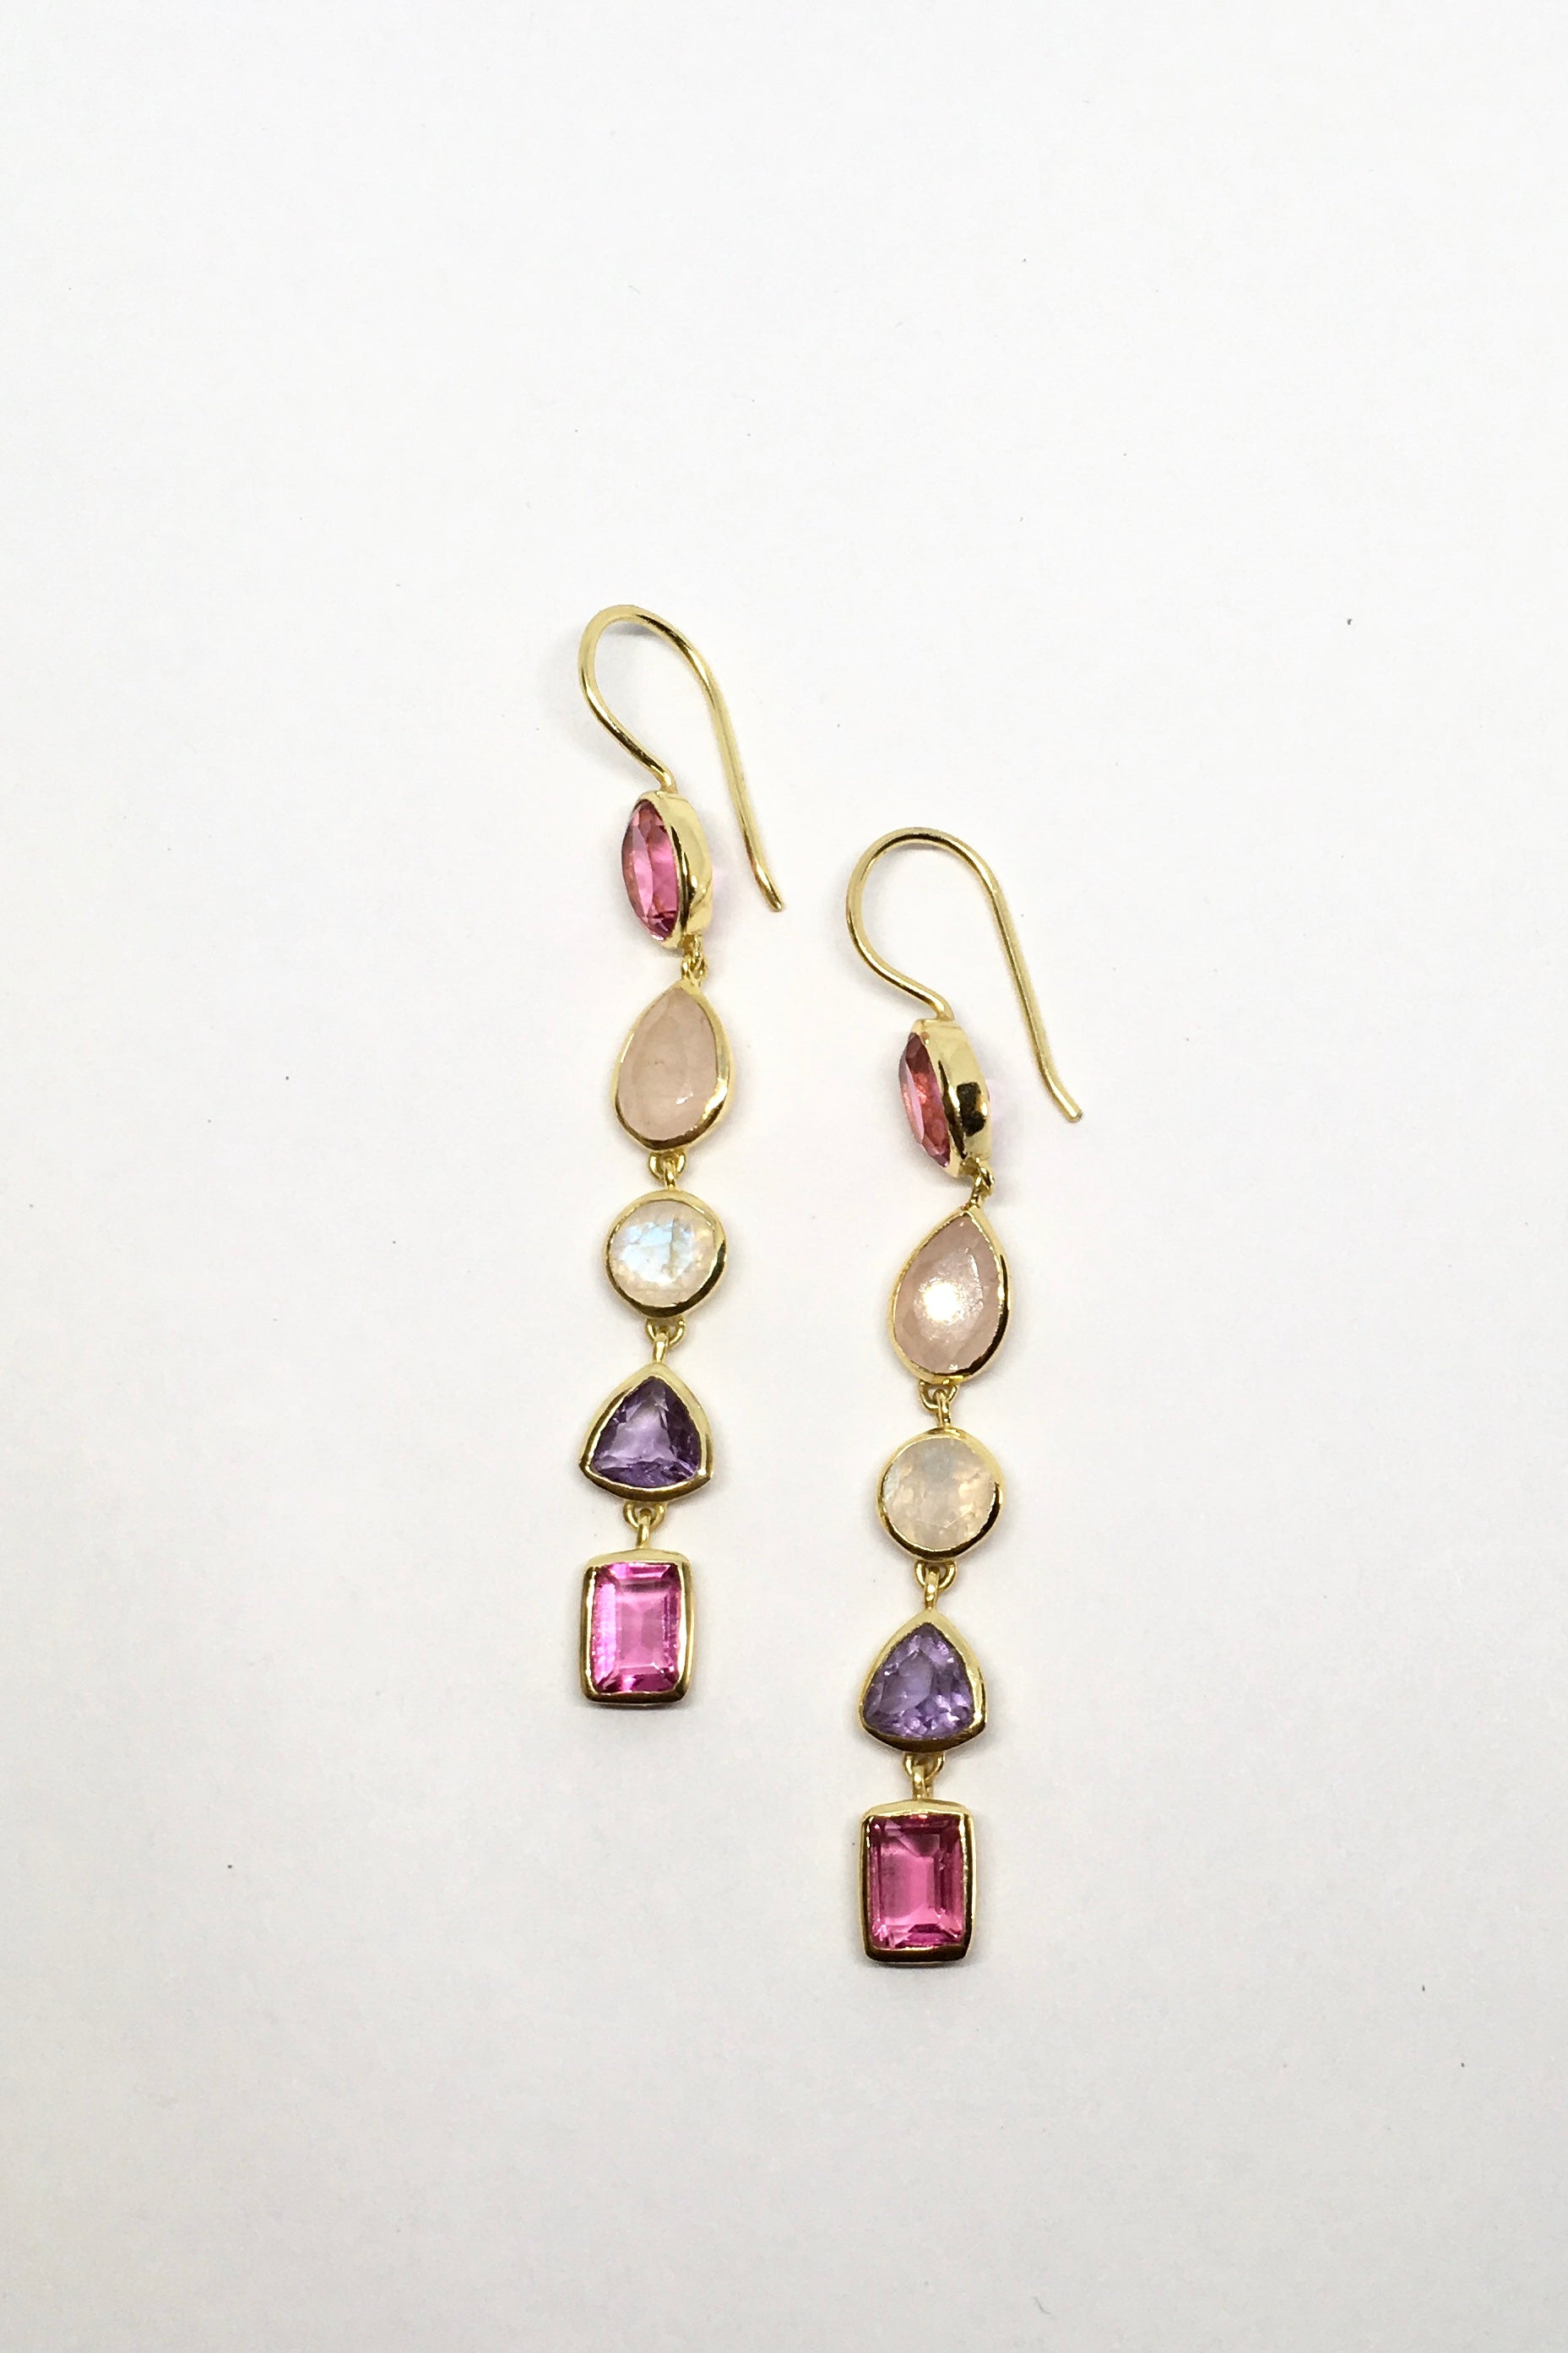 Oracle Earrings Golden Rainbow Pinks are ultra feminine drop style gold vermeil earrings. Boasting different shades of pink quartz